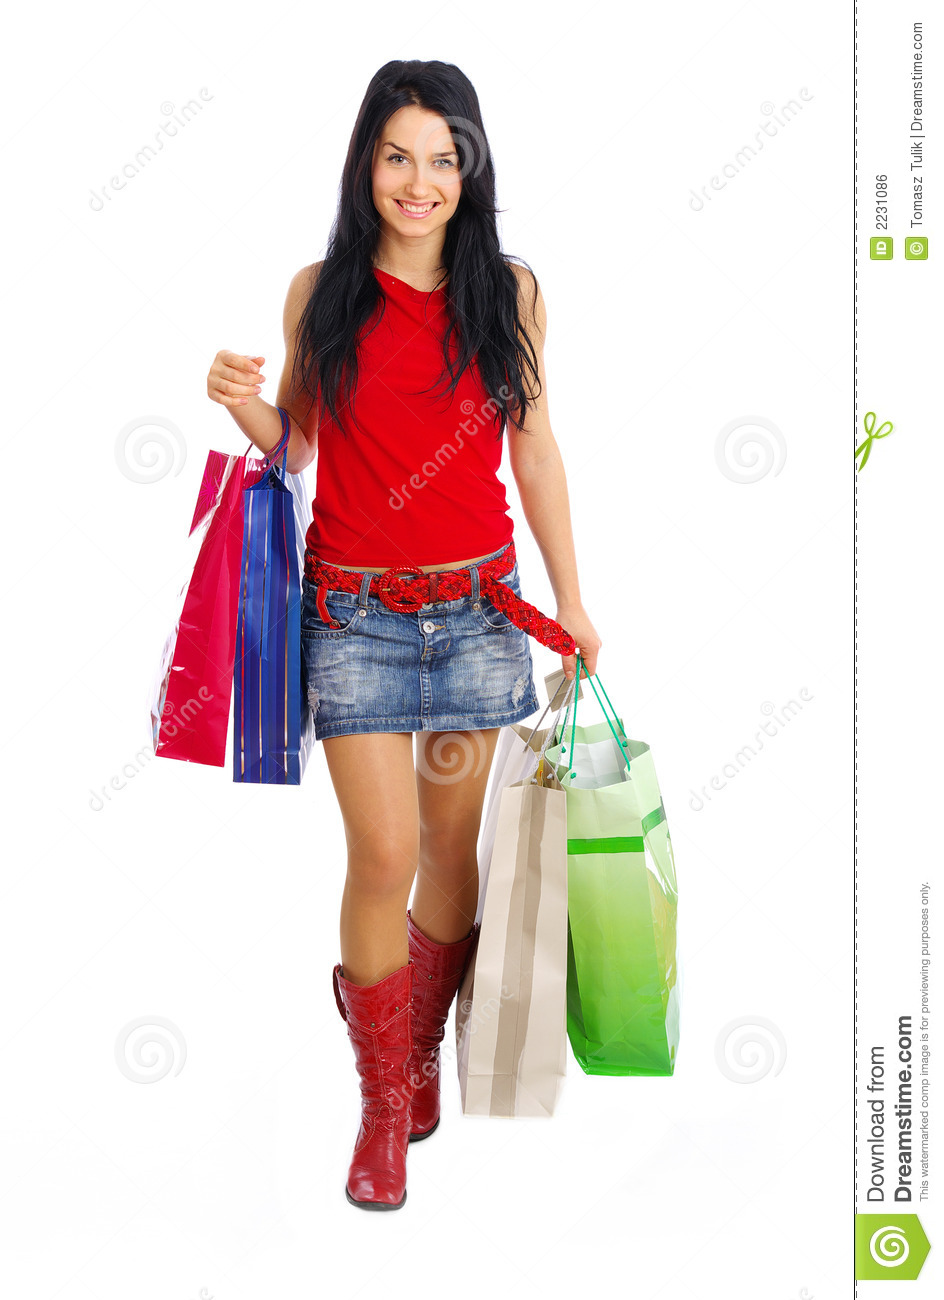 Happy Shopping Girl Royalty Free Stock Image - Image: 2231086